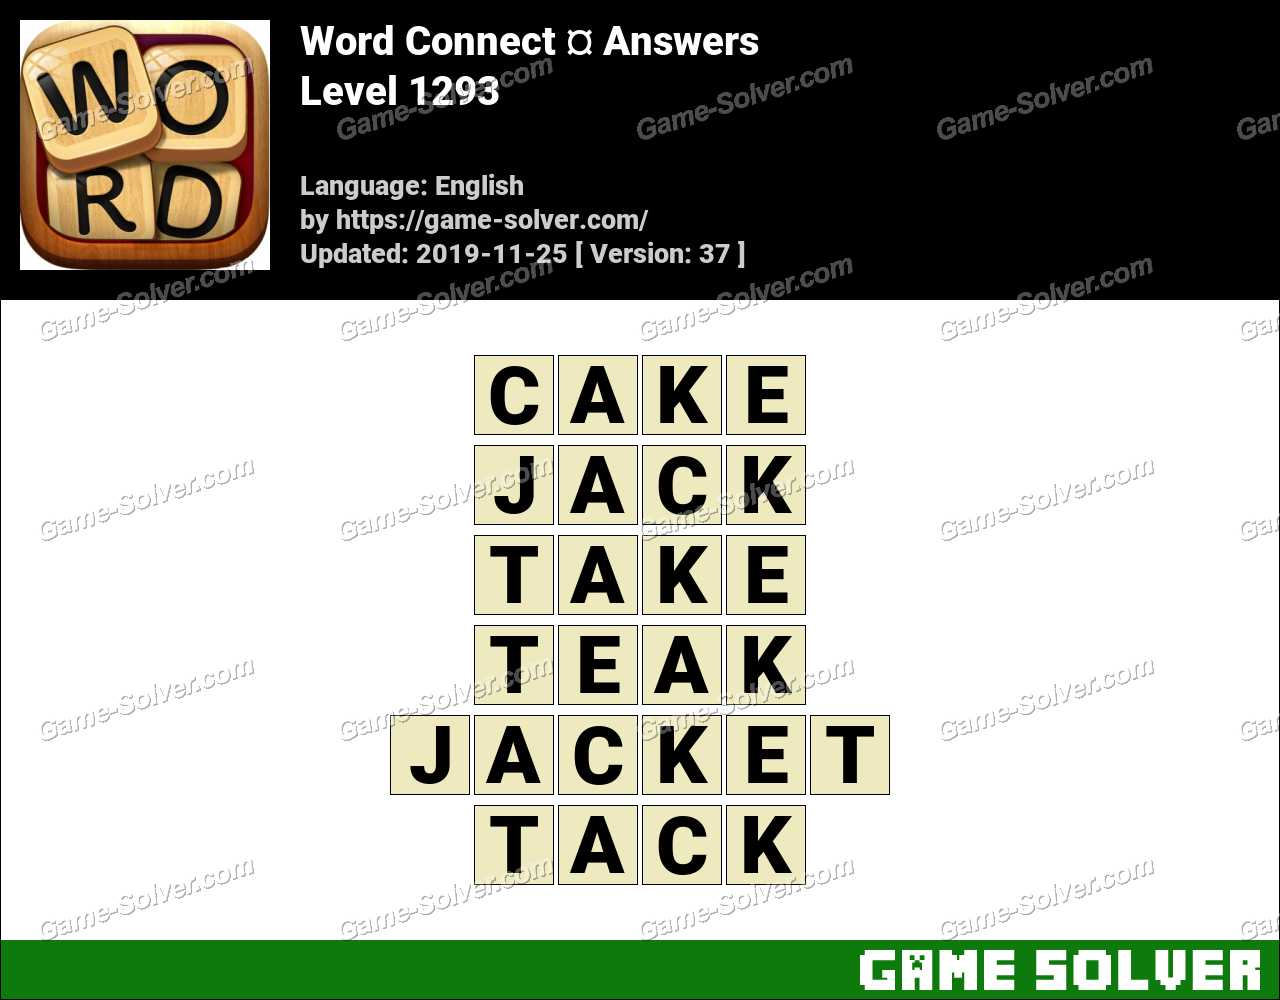 Word Connect Level 1293 Answers